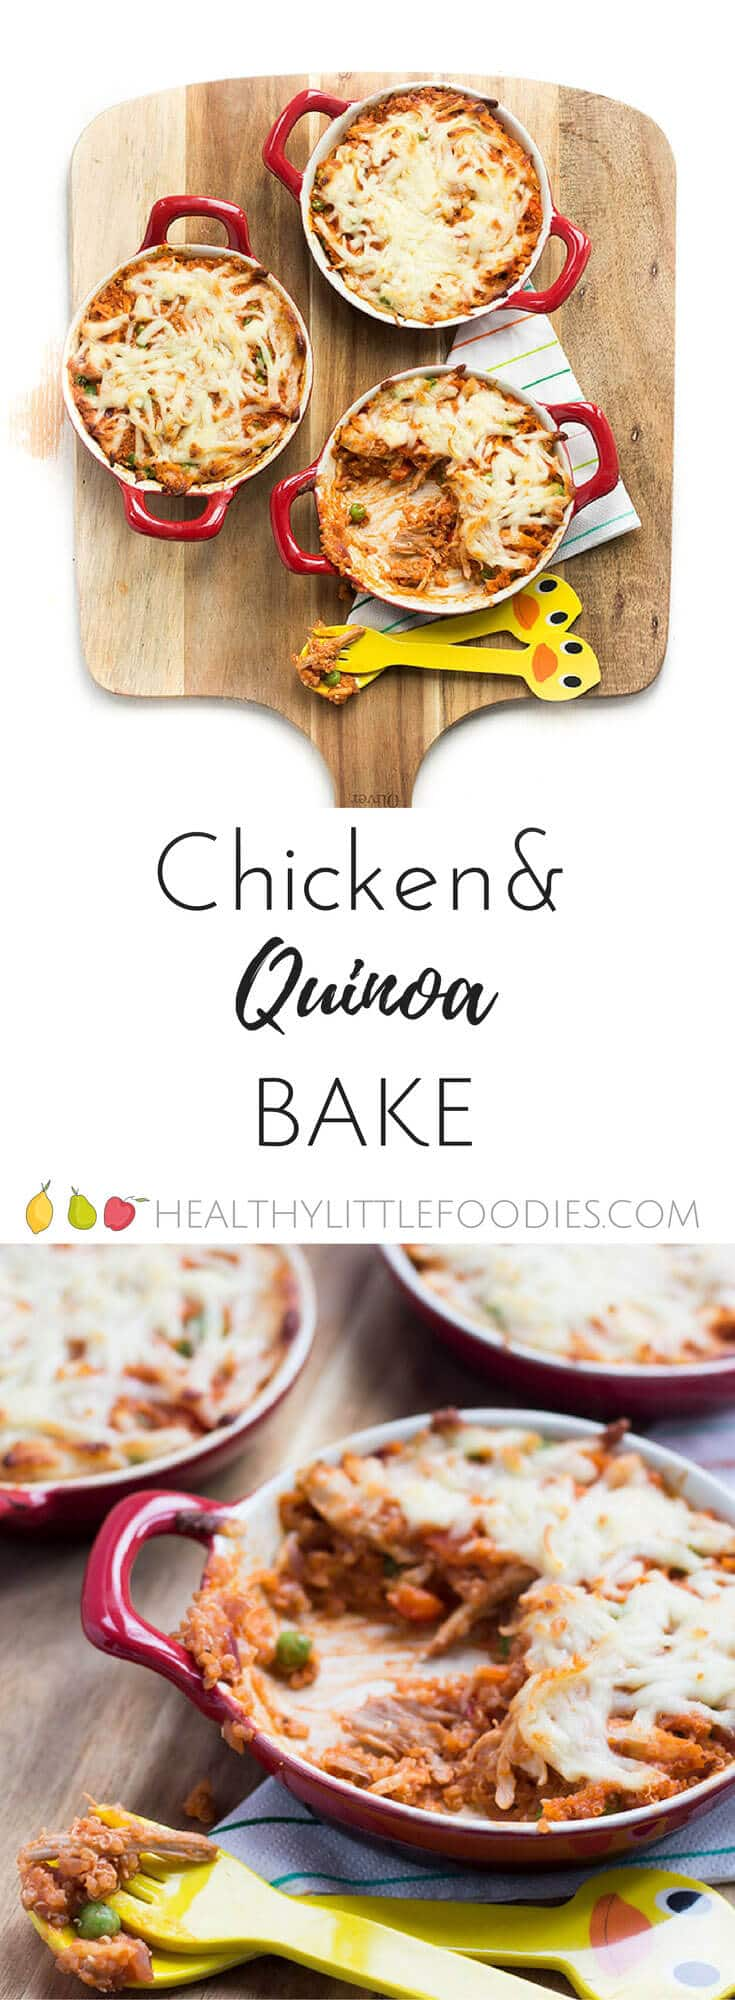 Chicken and quinoa bake a great family dish and a good way to introduce quinoa to the kids.